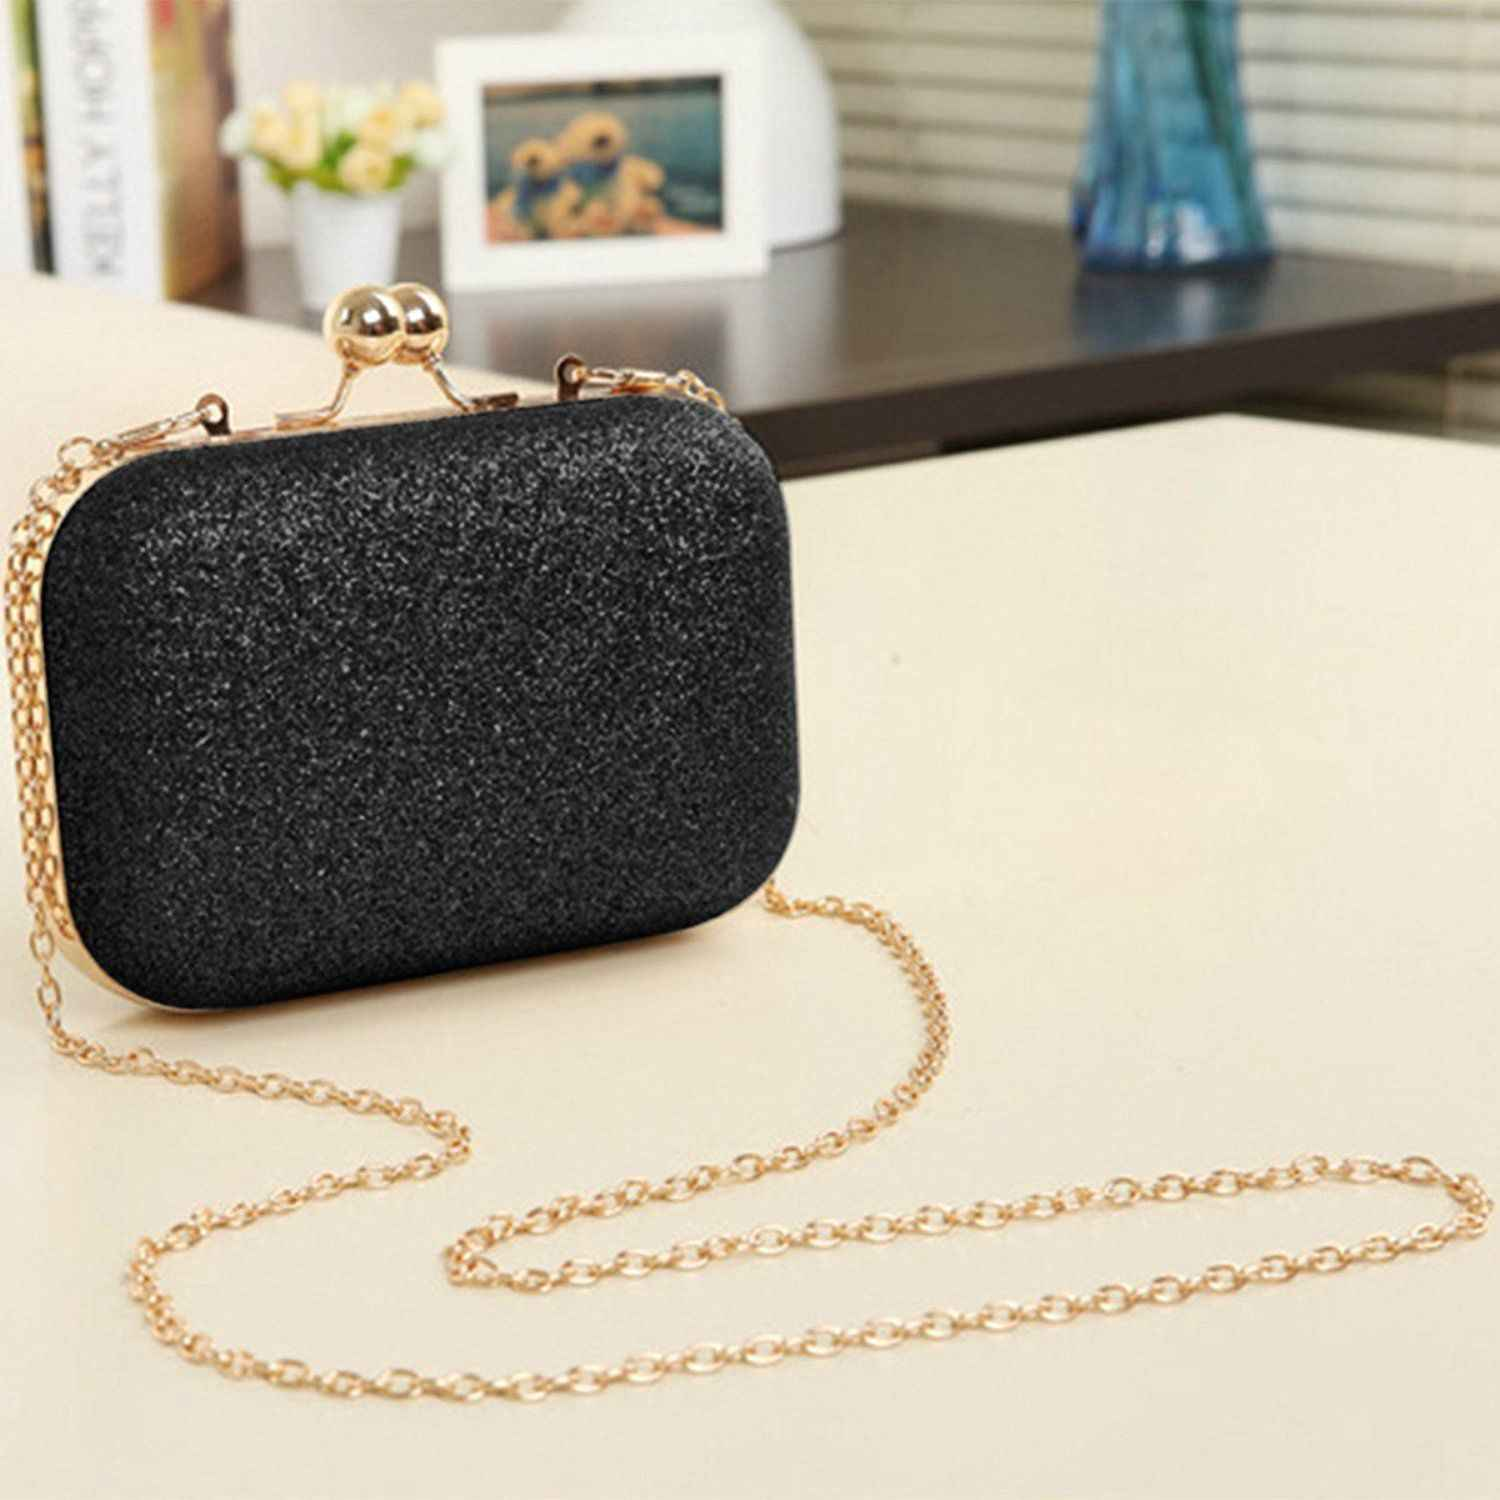 COSW Women's bling evening party handbag Wedding ball clutch bag with chain Mini  Birthday gift Valentine's Day Black